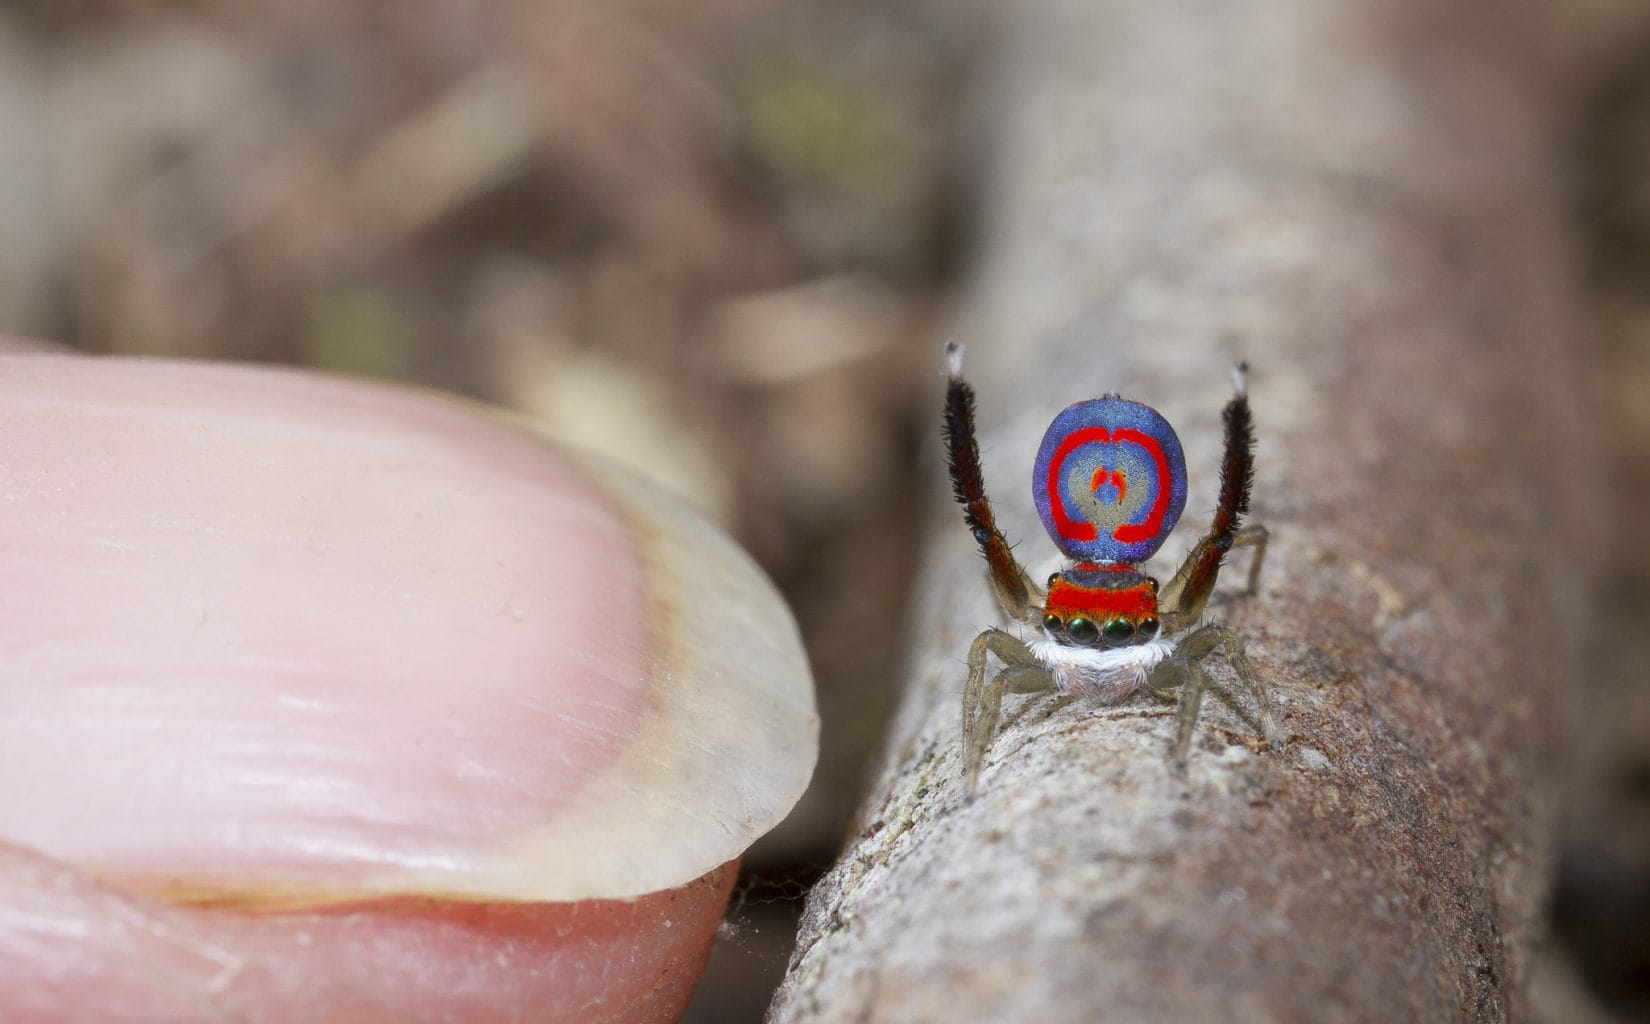 Image: Male Jumping Spider looking very small next to a fingernail!